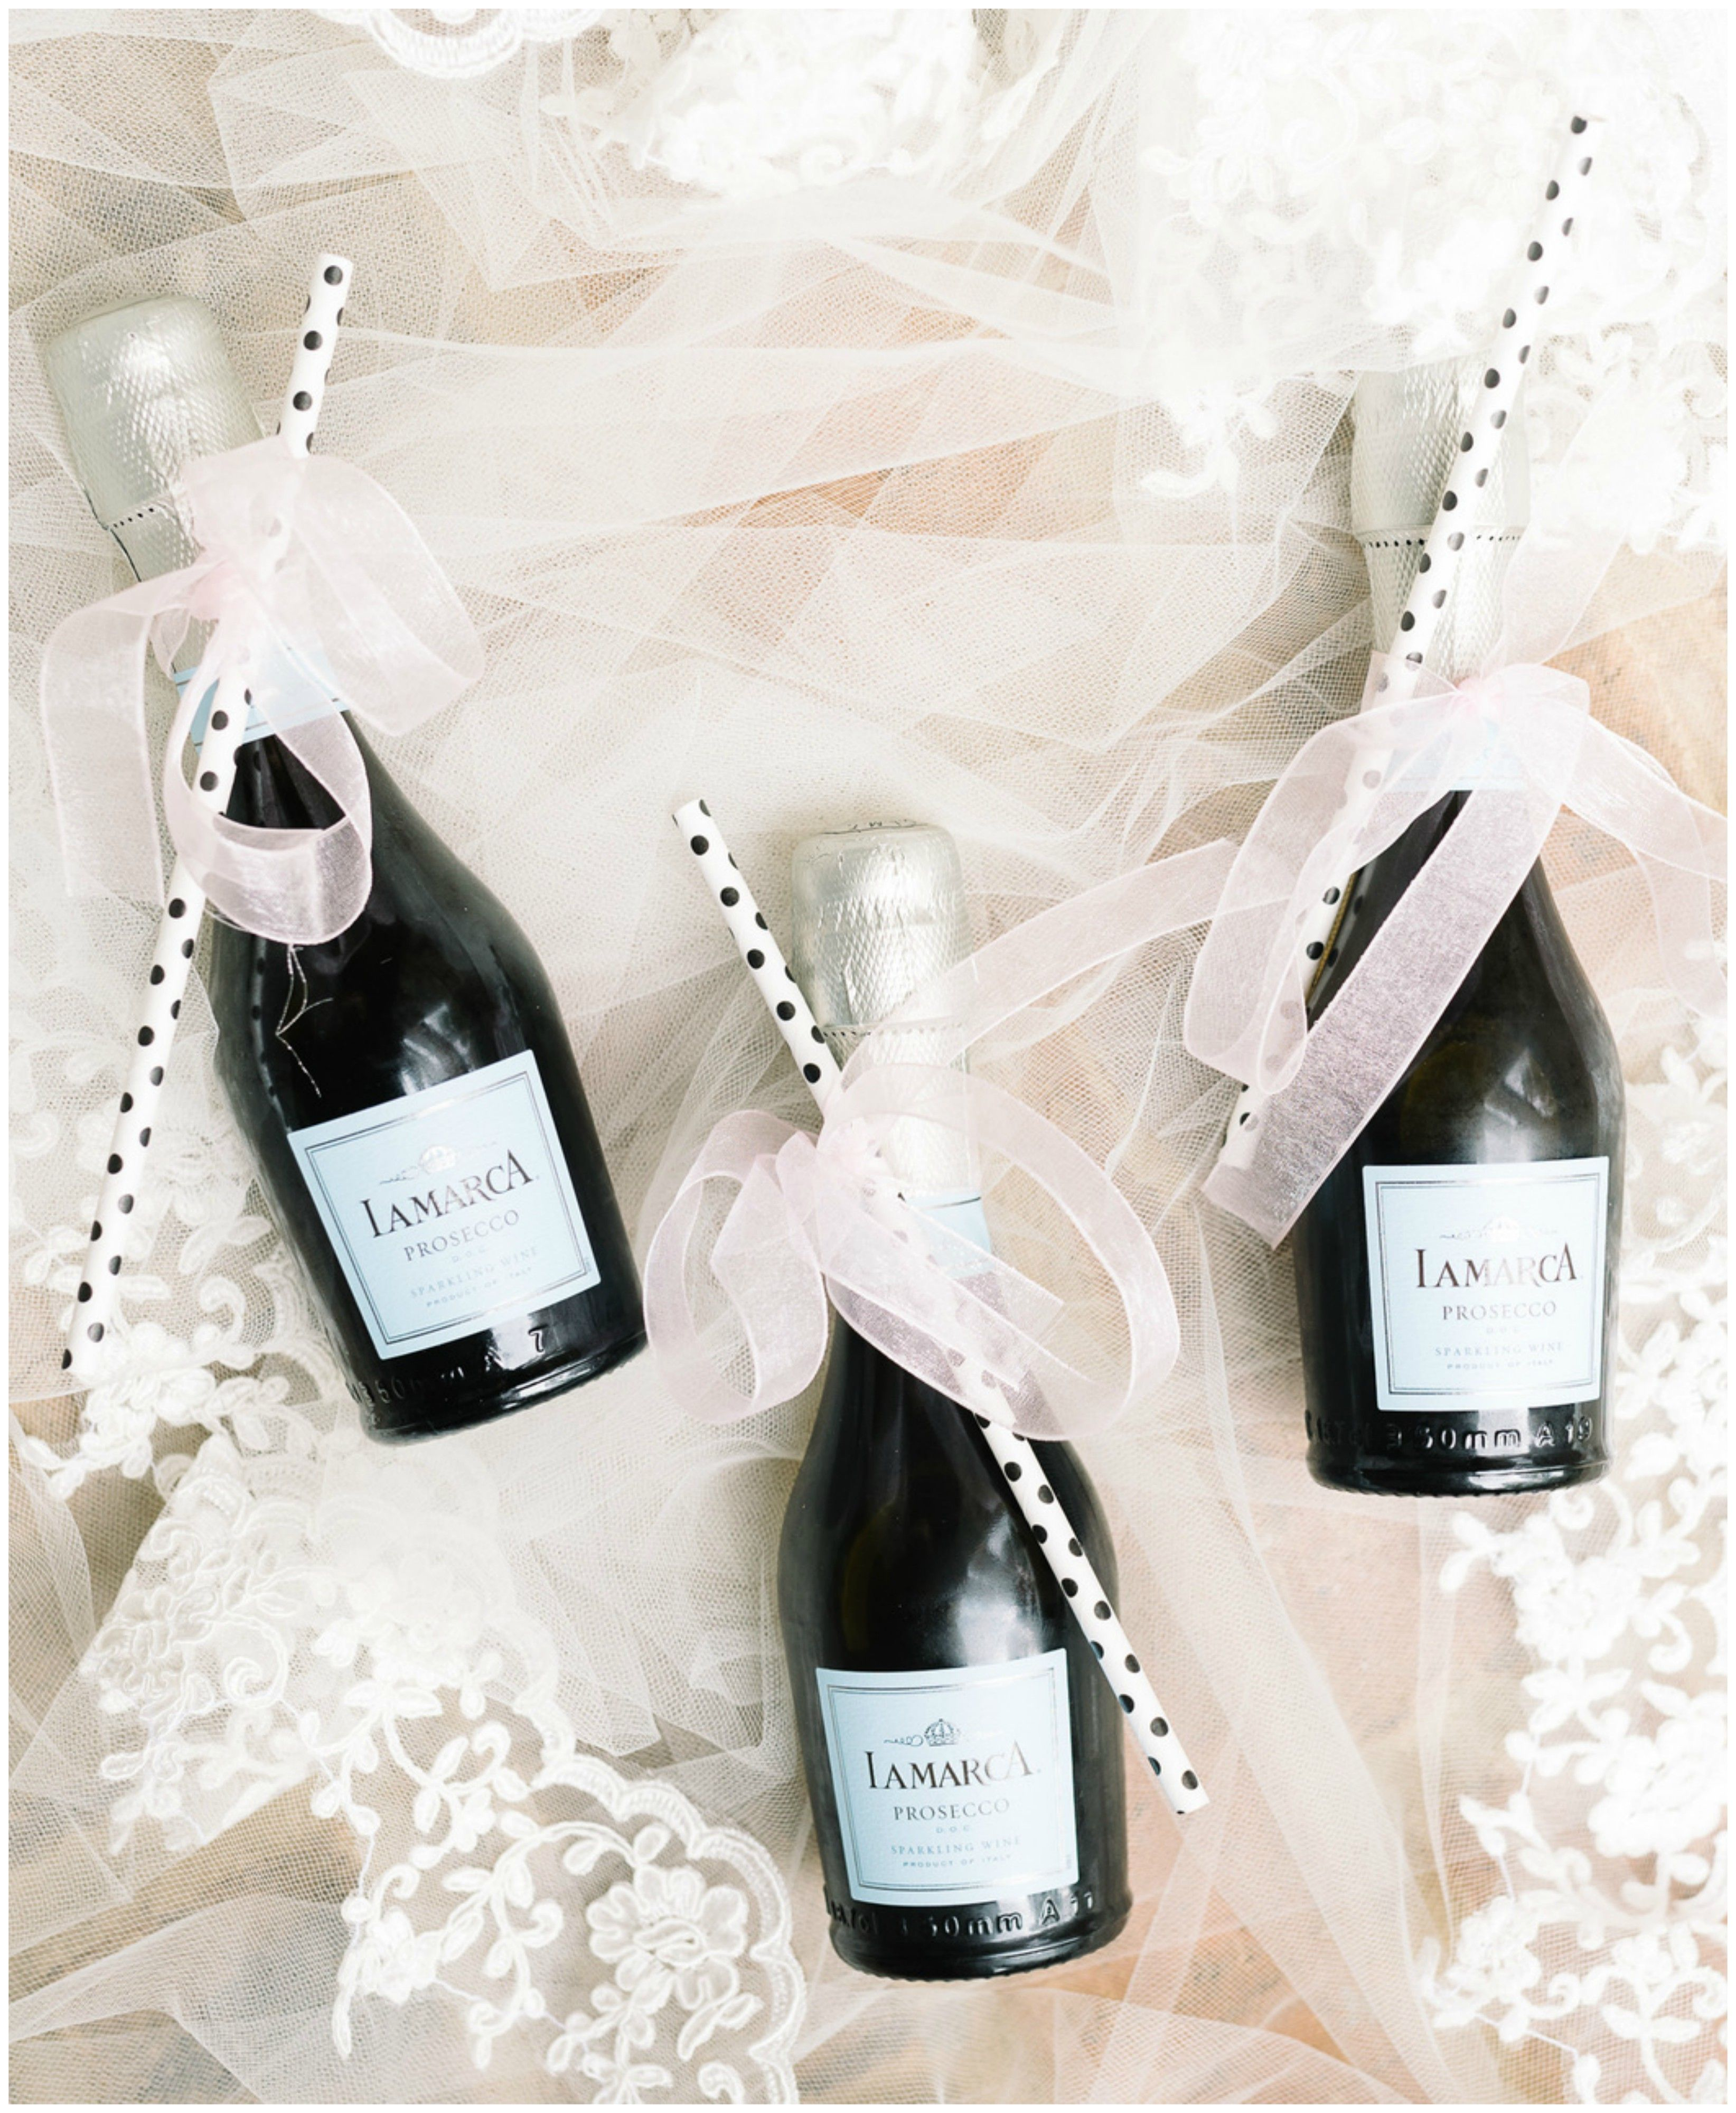 The Smarter Way to Wed   Lamarca prosecco, Wedding and Wedding